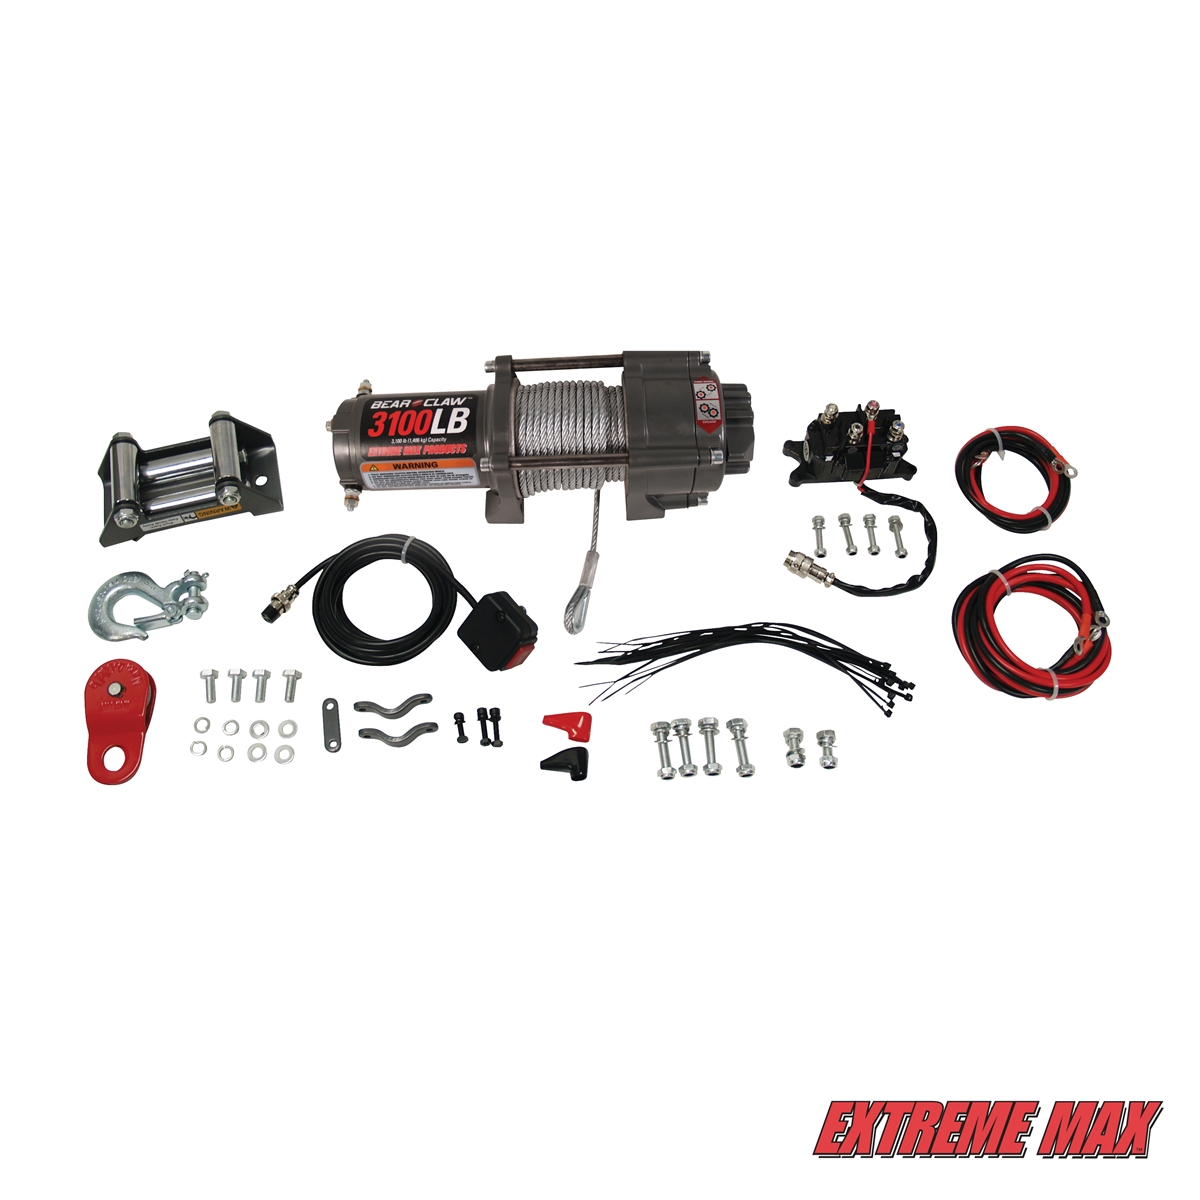 Extreme Max Complete Lb Winch Amp Quick Release Kit For Atv Utv